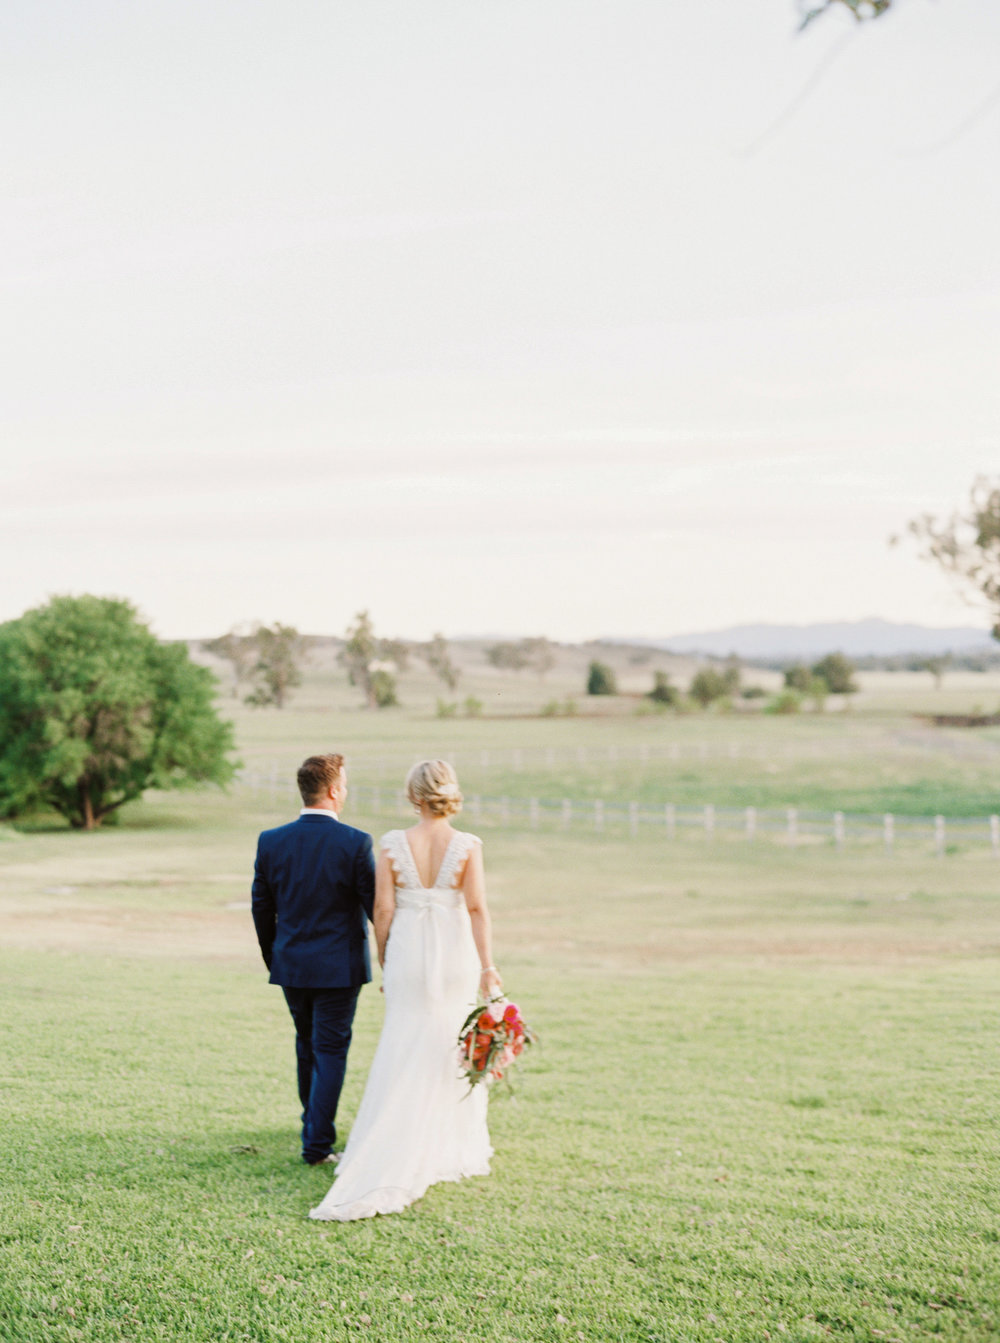 00098- Goonoo Goonoo Station Wedding Tamworth NSW Fine Art Film Wedding Photographer Sheri McMahon_-2.jpg